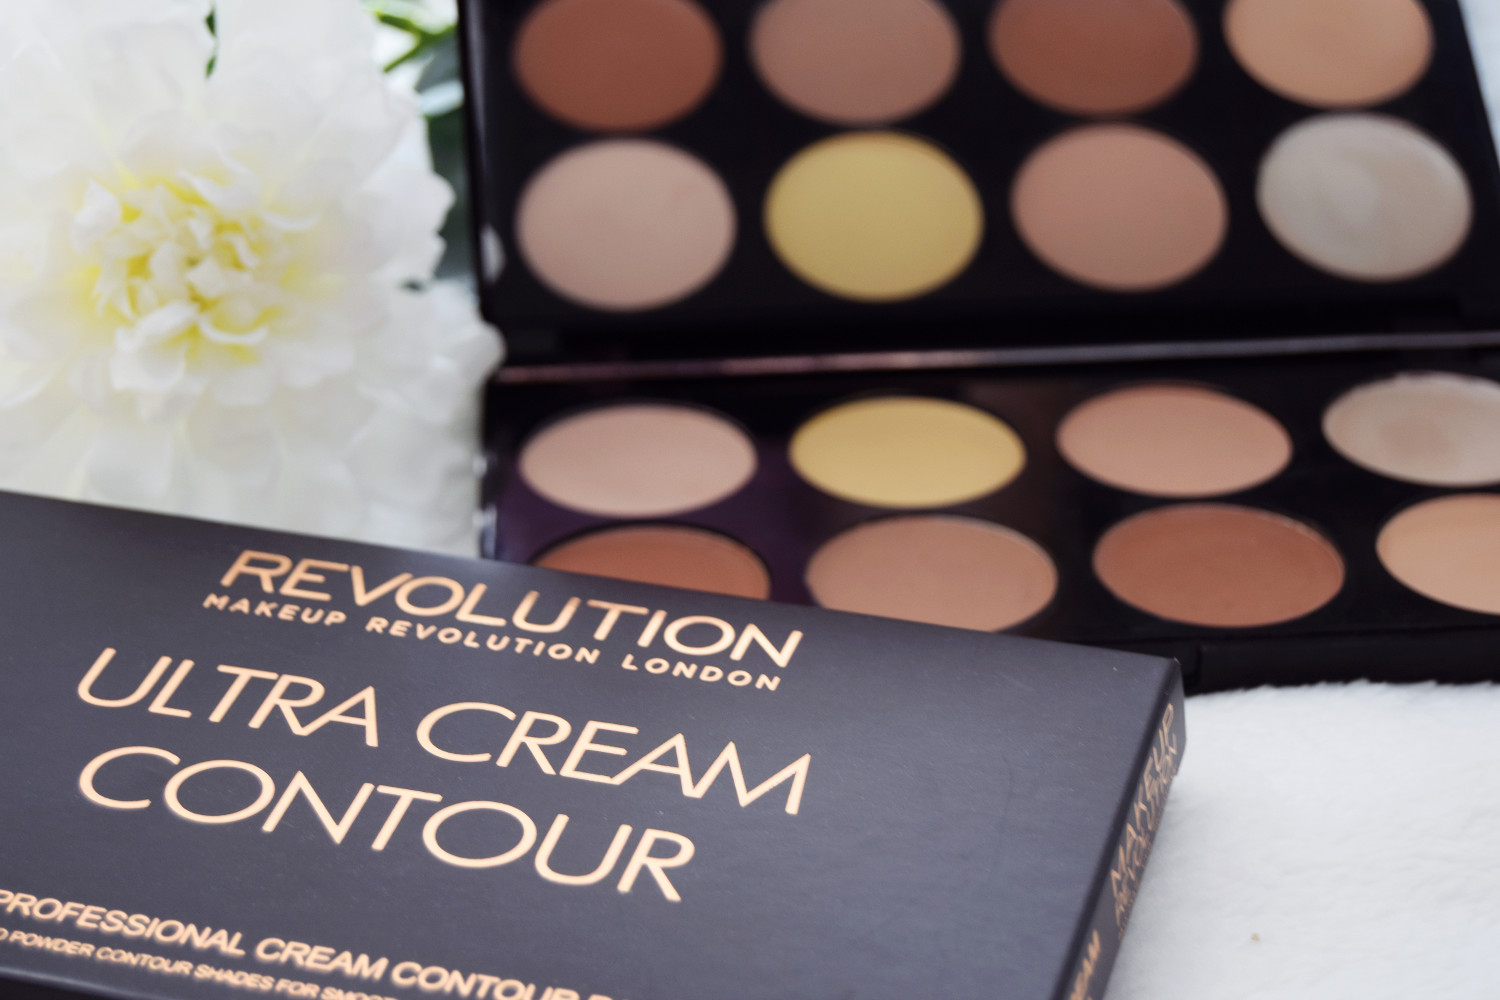 Makeup_Revolution_London_haul_review_ultra_cream_contour_Zalabell_1